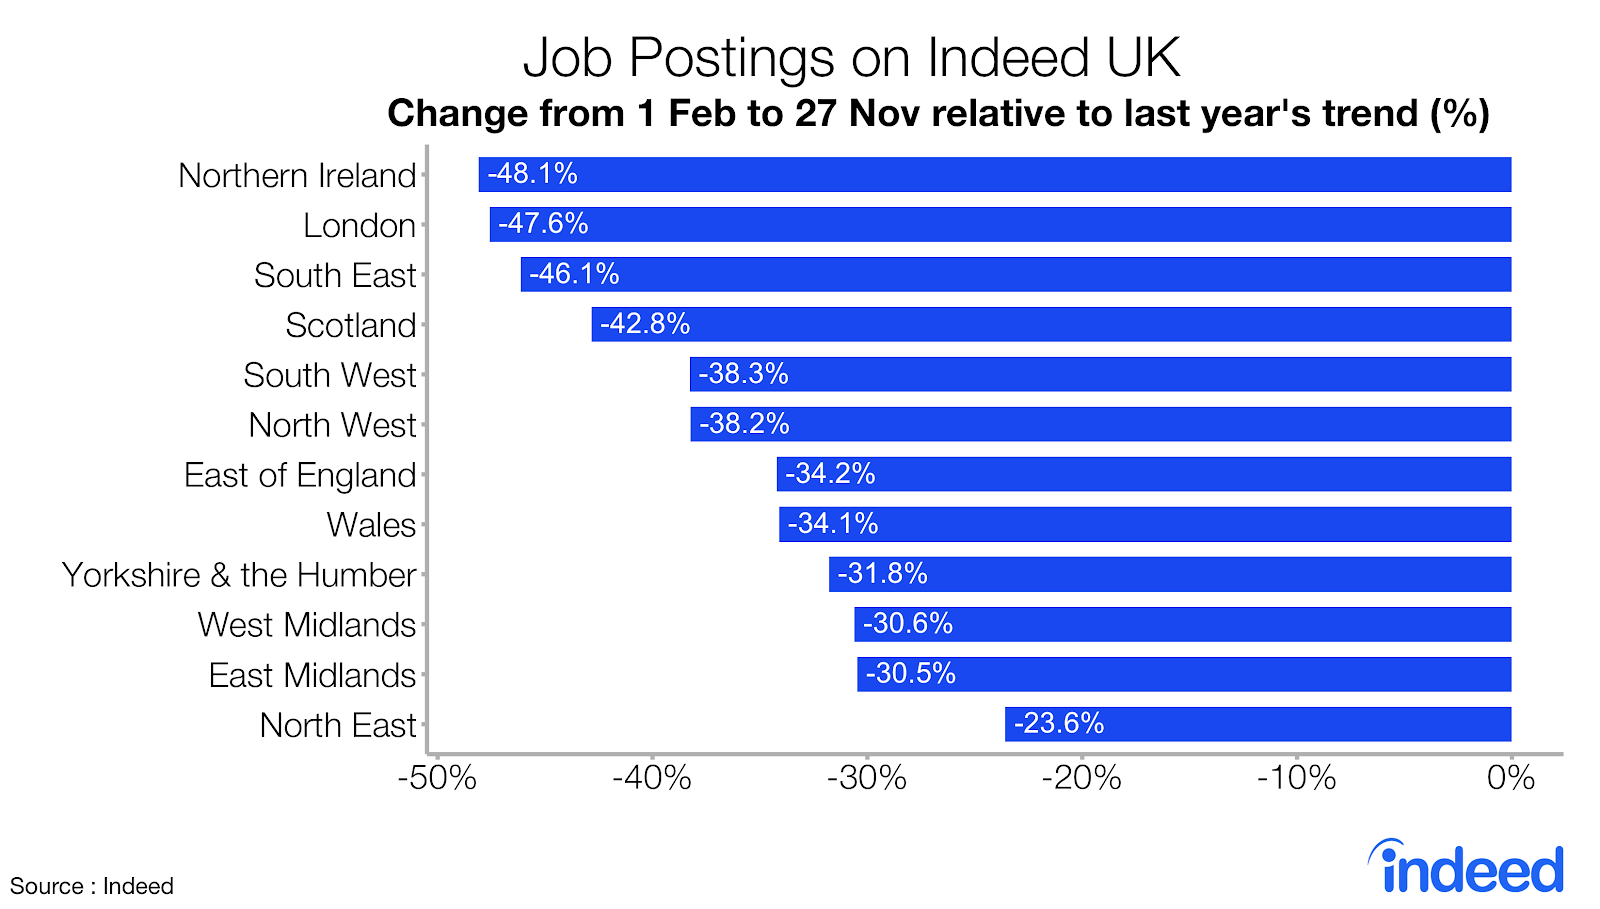 Bar chart showing job postings on Indeed UK by region